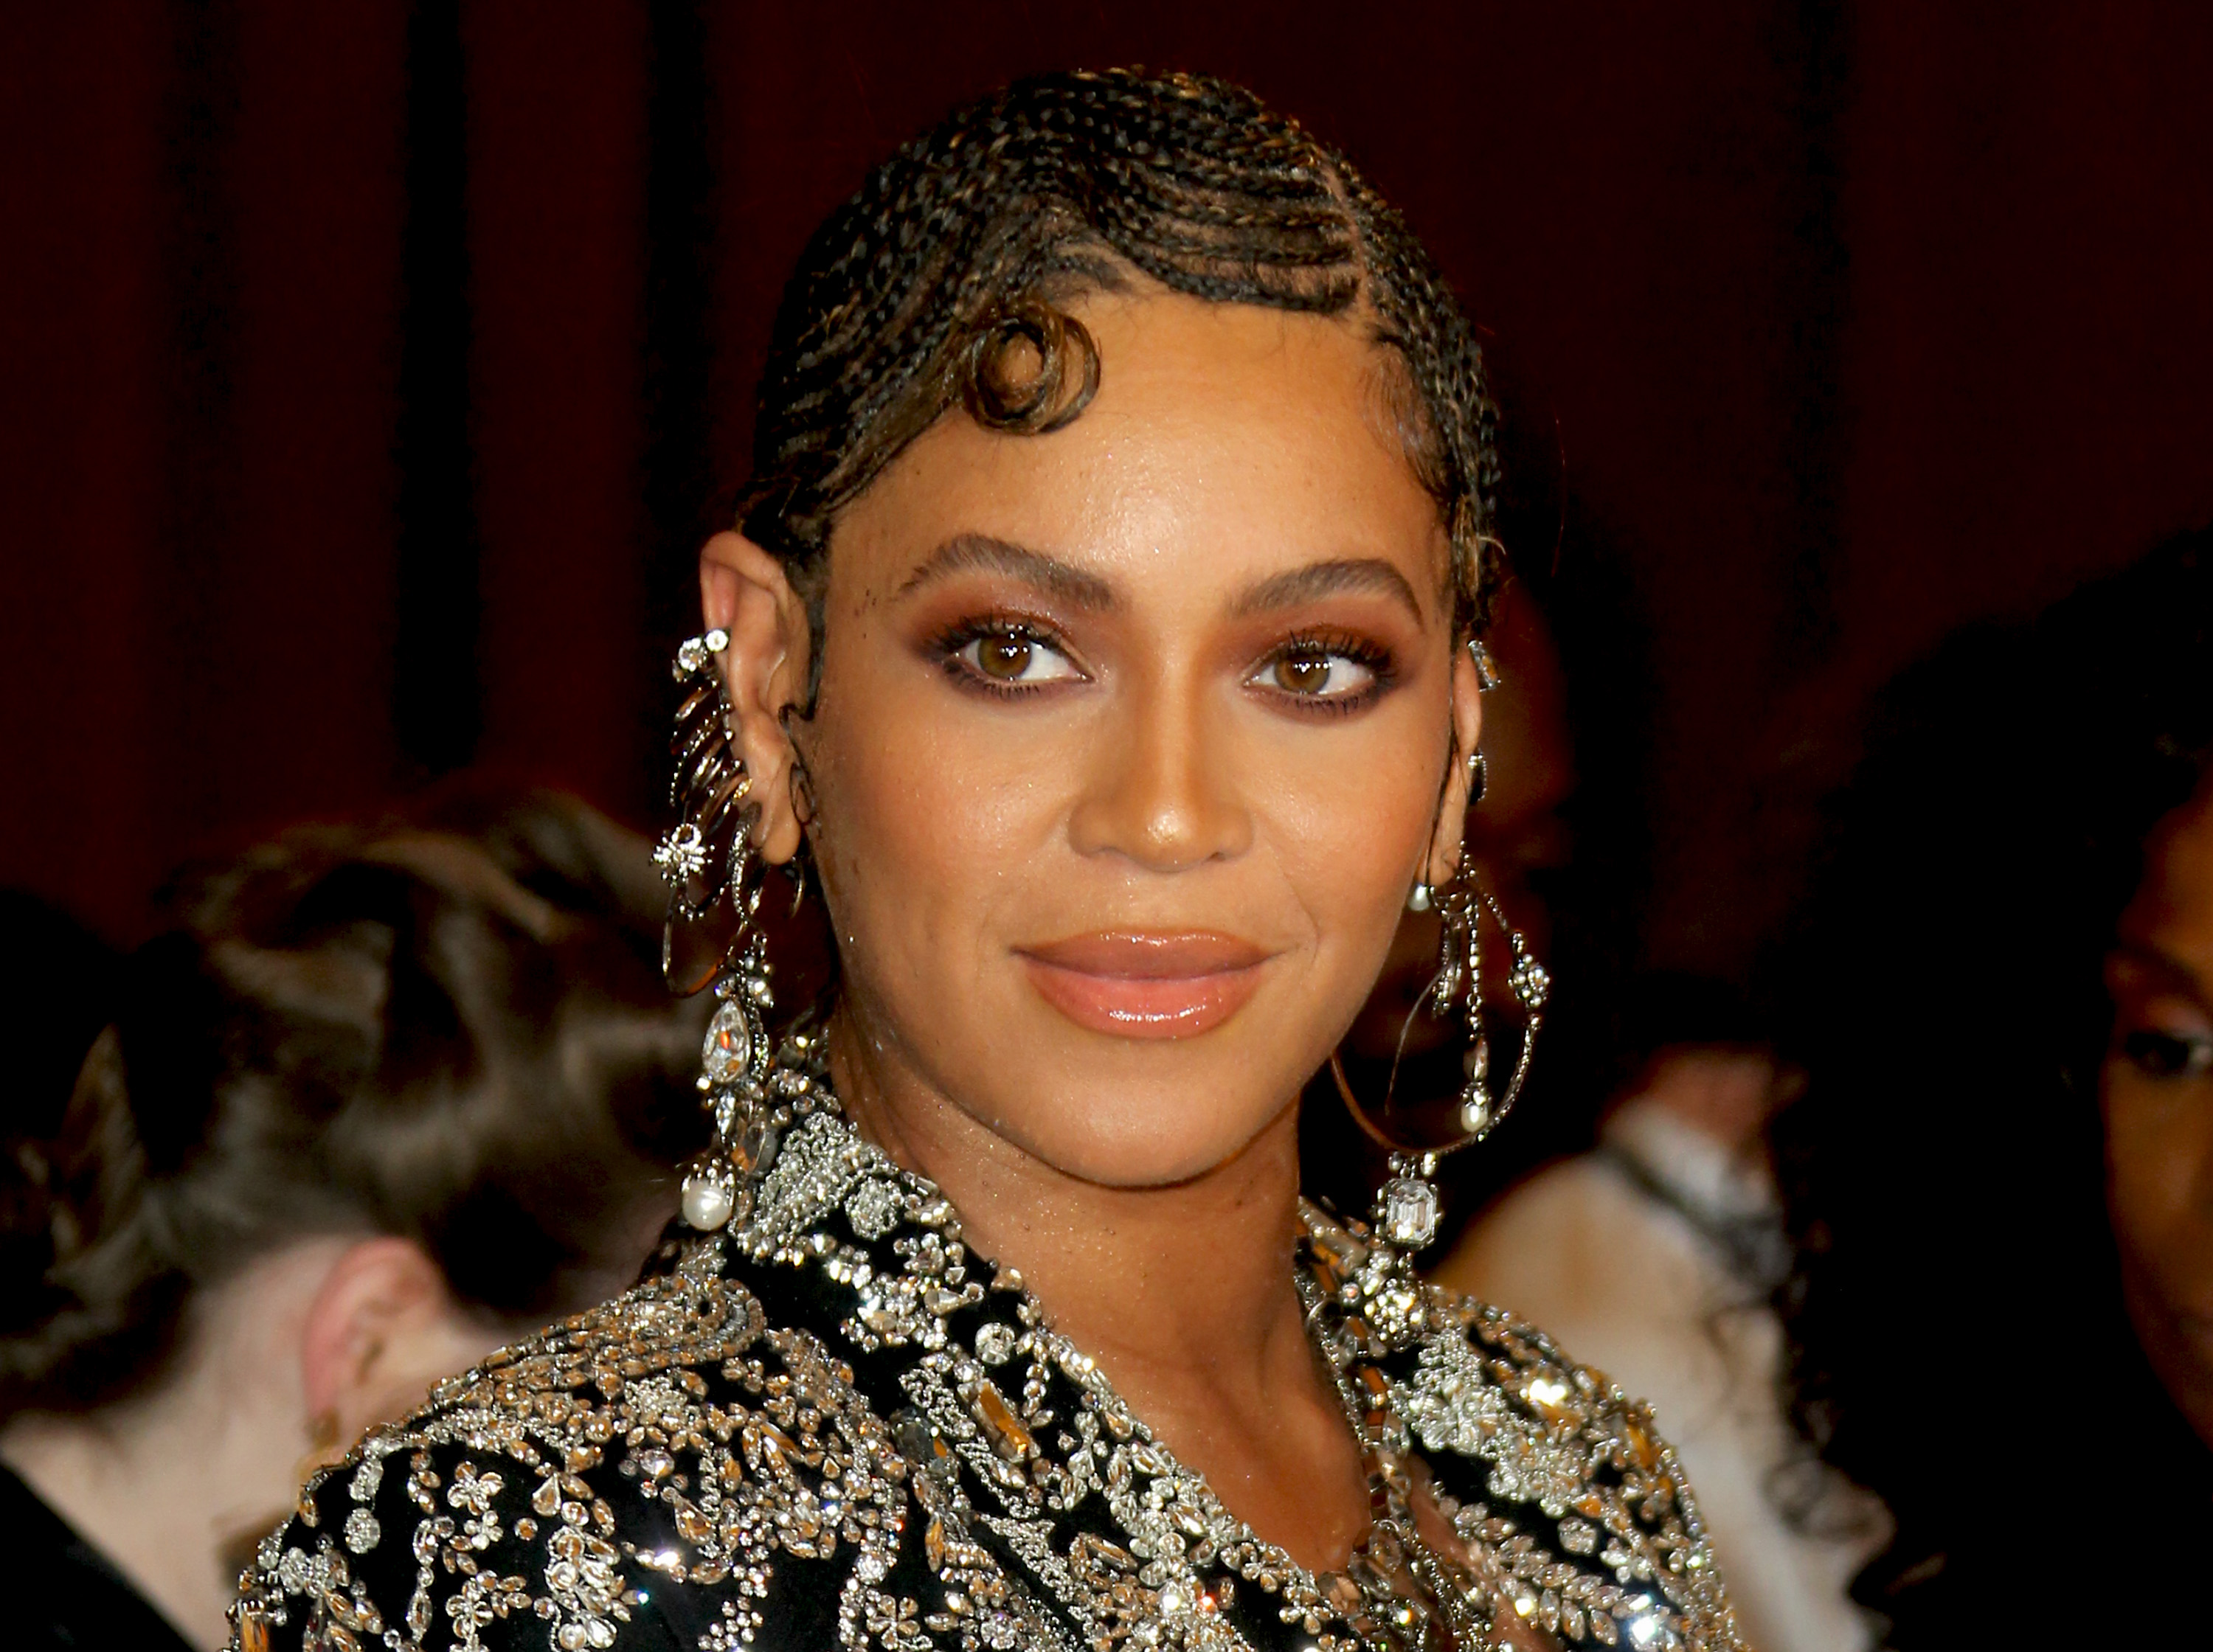 Beyonce Is Now The Queen...Of Madame Tussauds In London